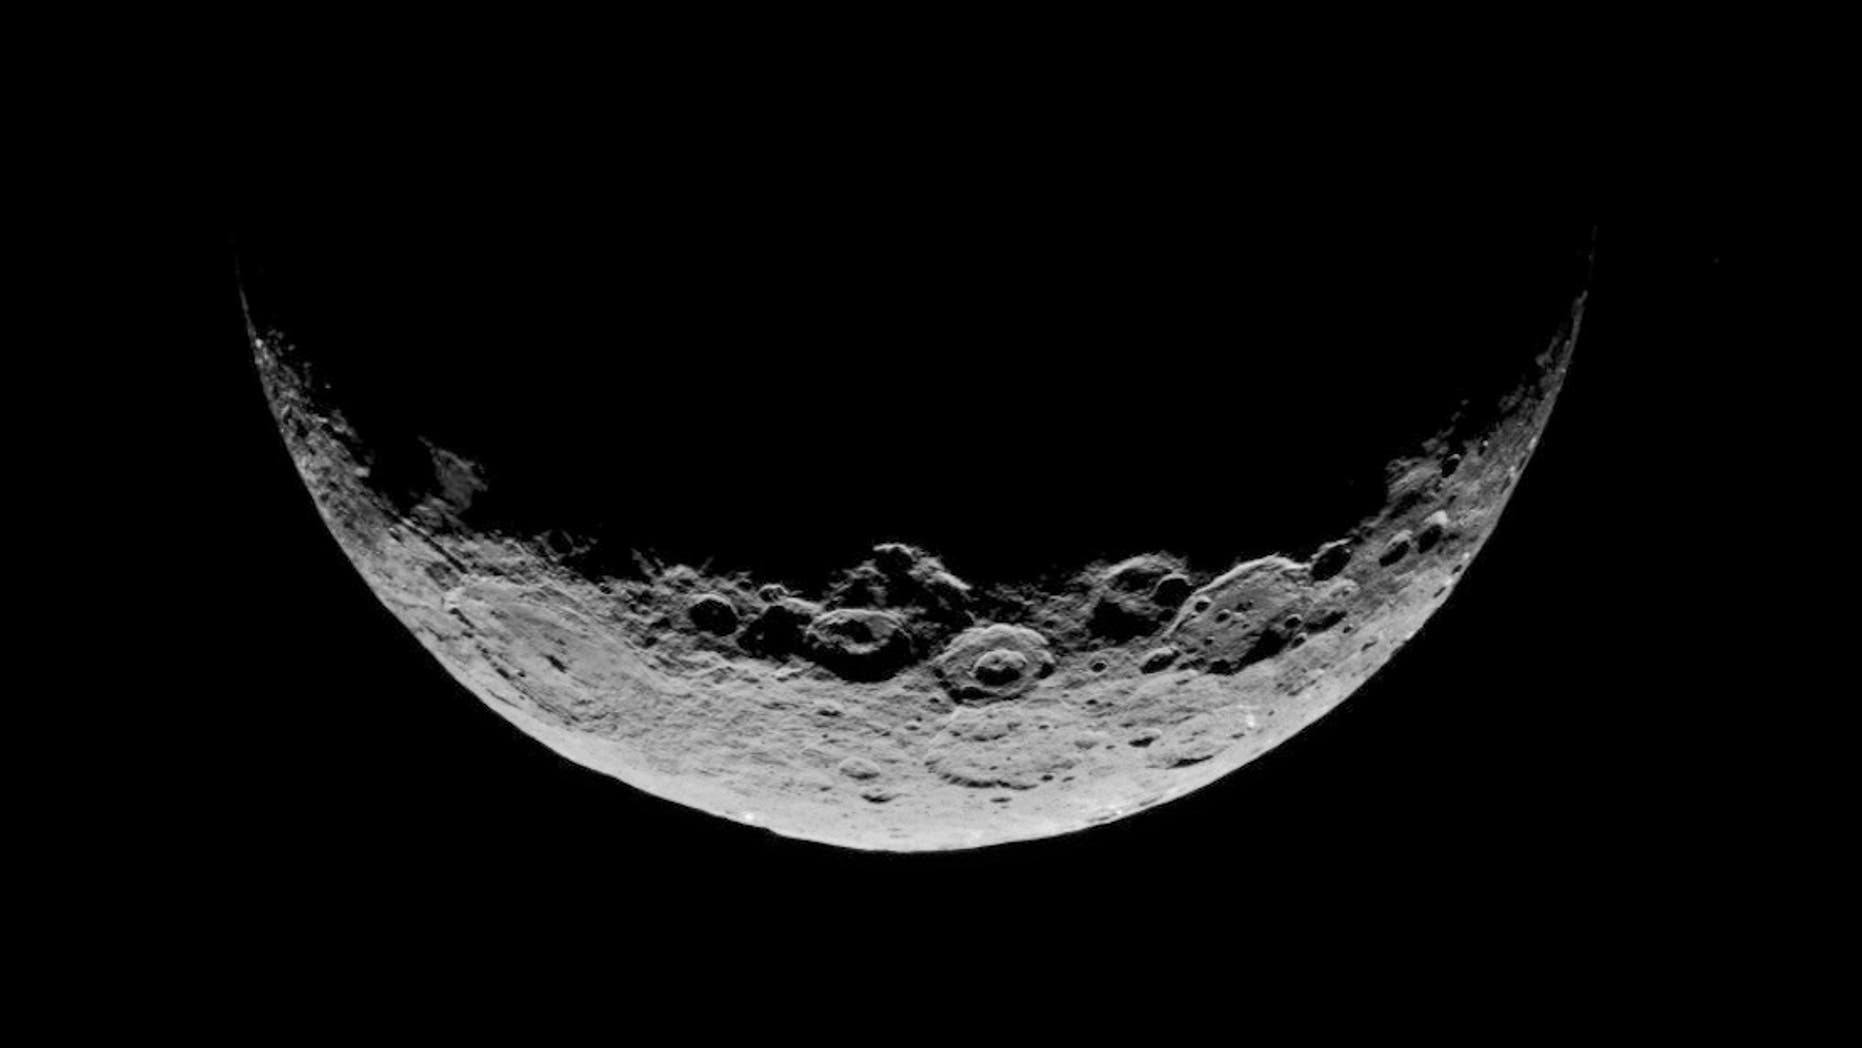 New research suggests some asteroids started as giant mud balls. The largest objects in the Asteroid Belt, like Ceres (shown here), might still harbor mud at their hearts.